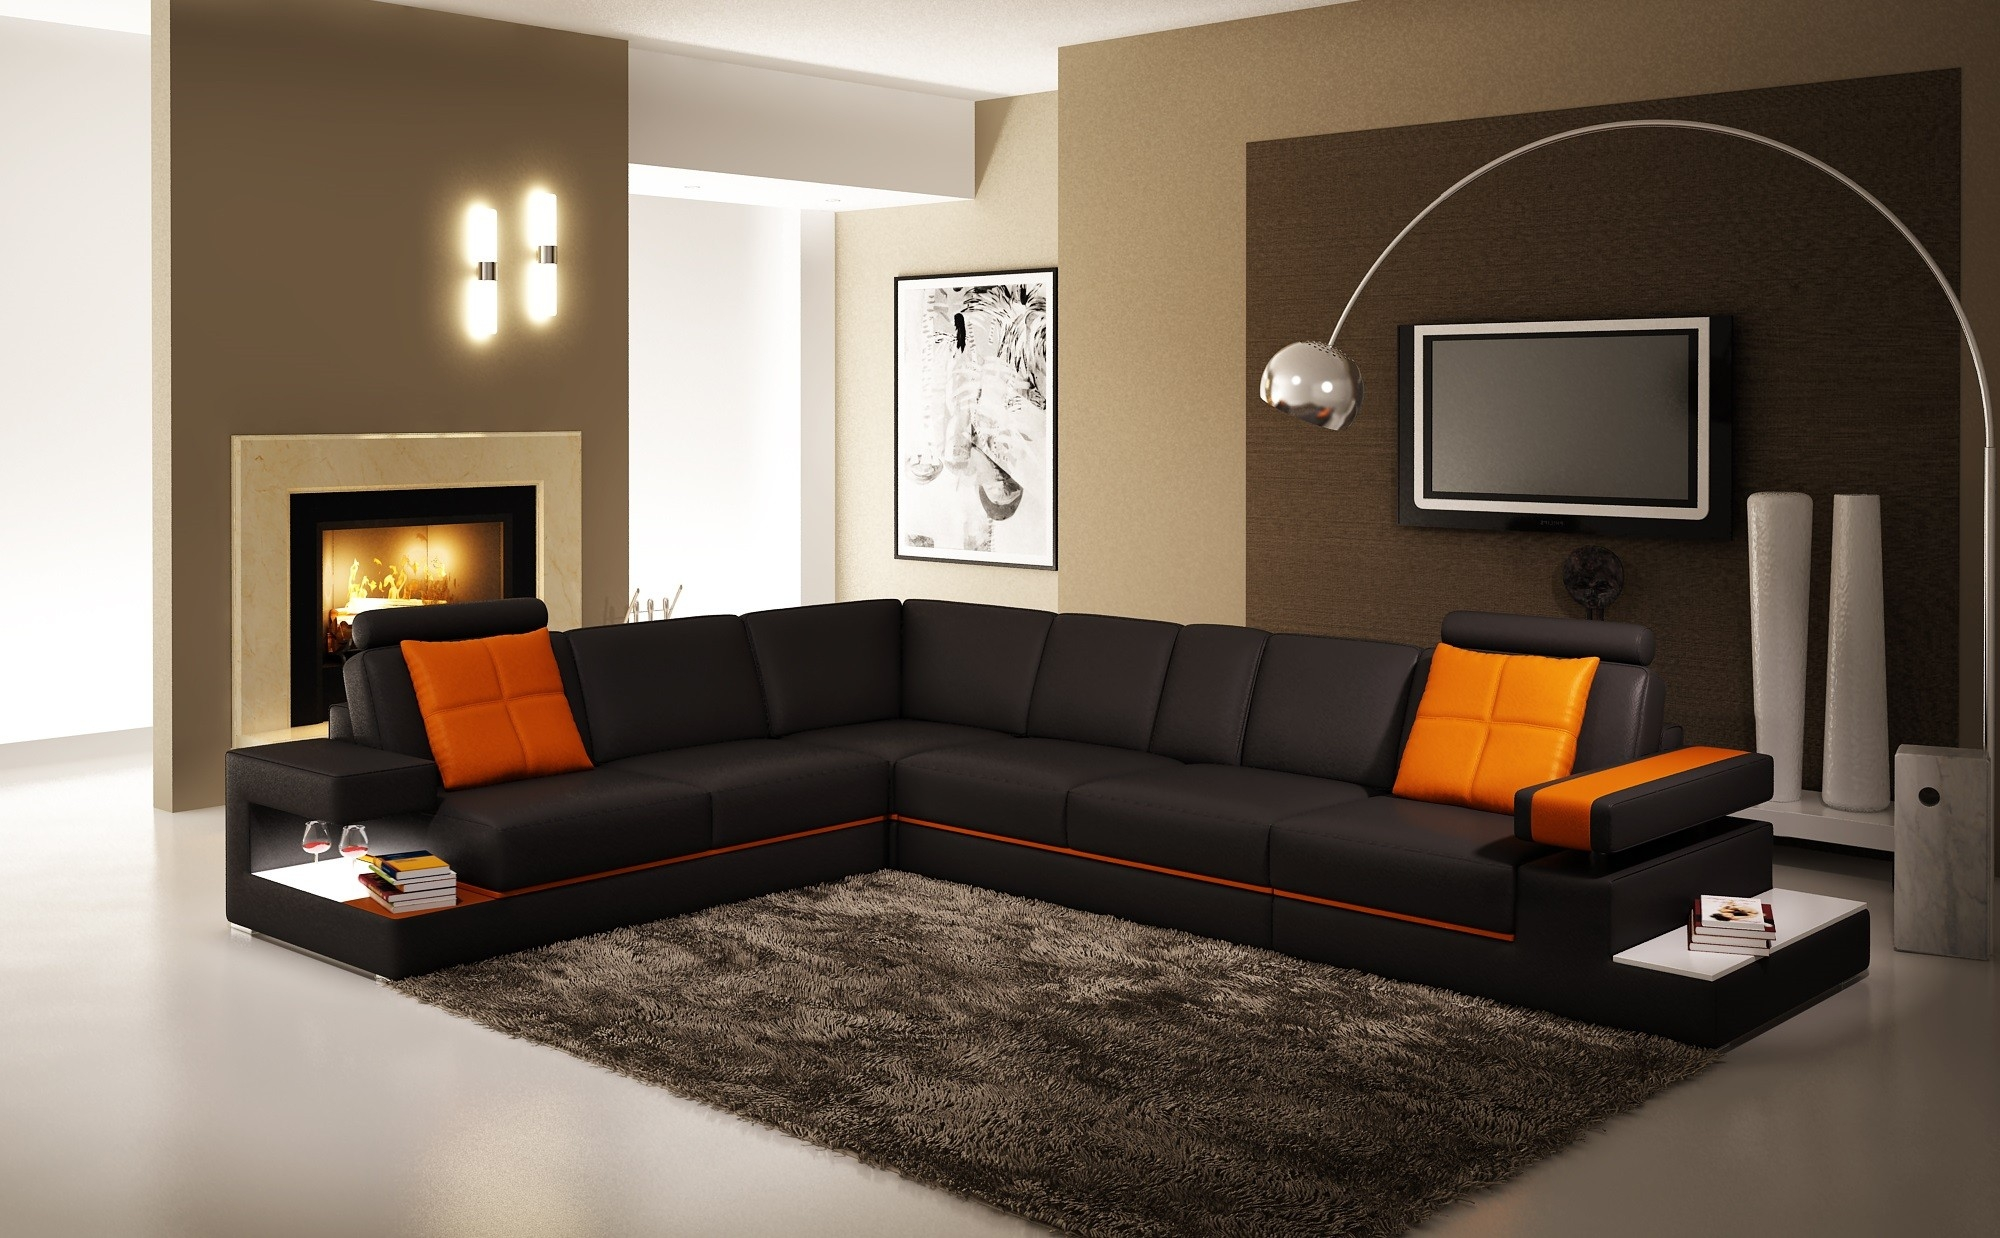 Leather Corner Sofa Second Hand | Tehranmix Decoration pertaining to Large Black Leather Corner Sofas (Image 13 of 30)